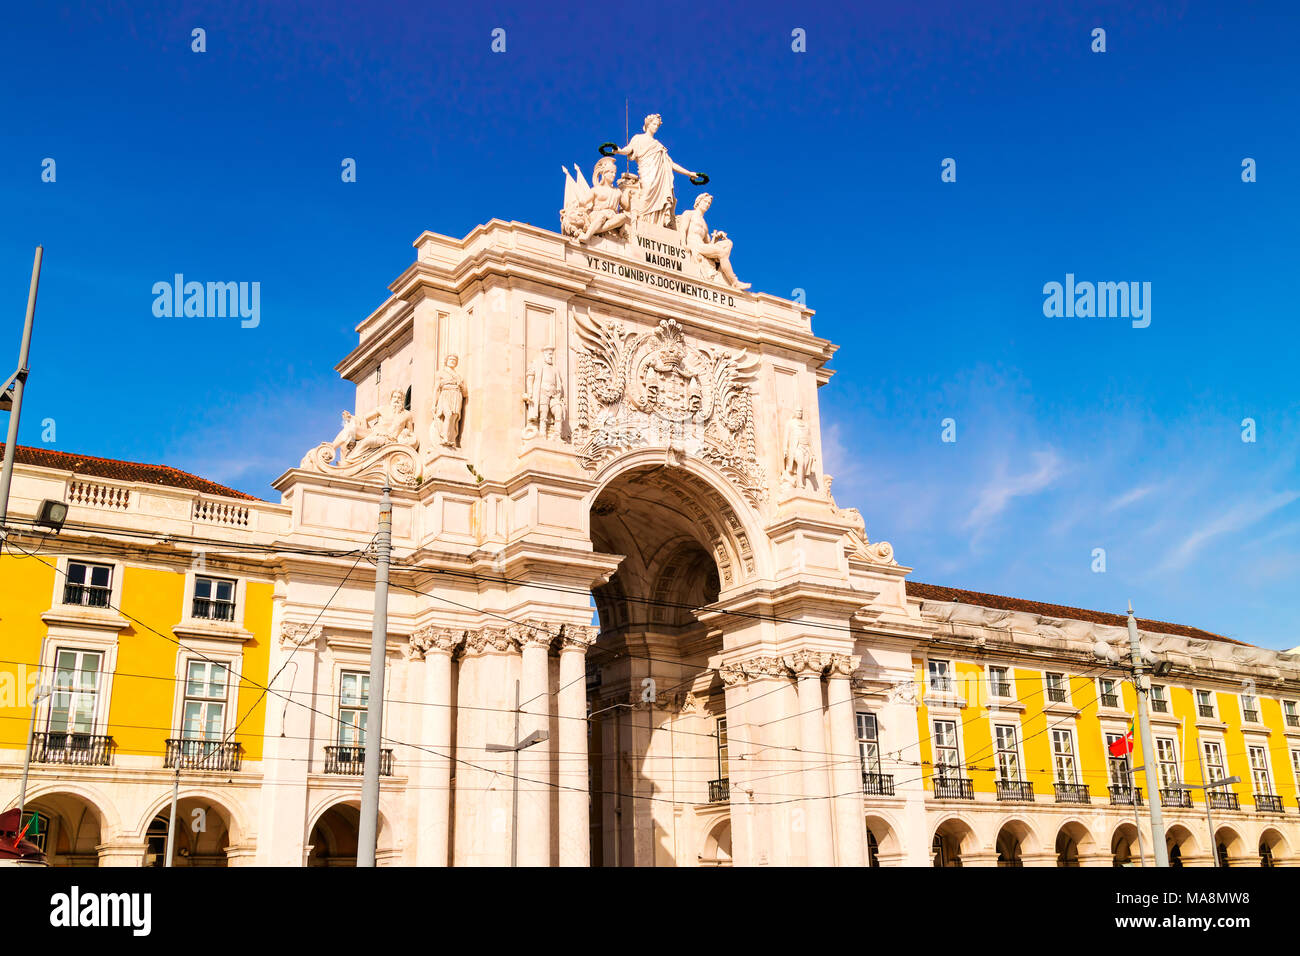 Rua Augusta Arch at the Praca do Comrcio, Commerce Square in English, is Lisbons main square. - Stock Image